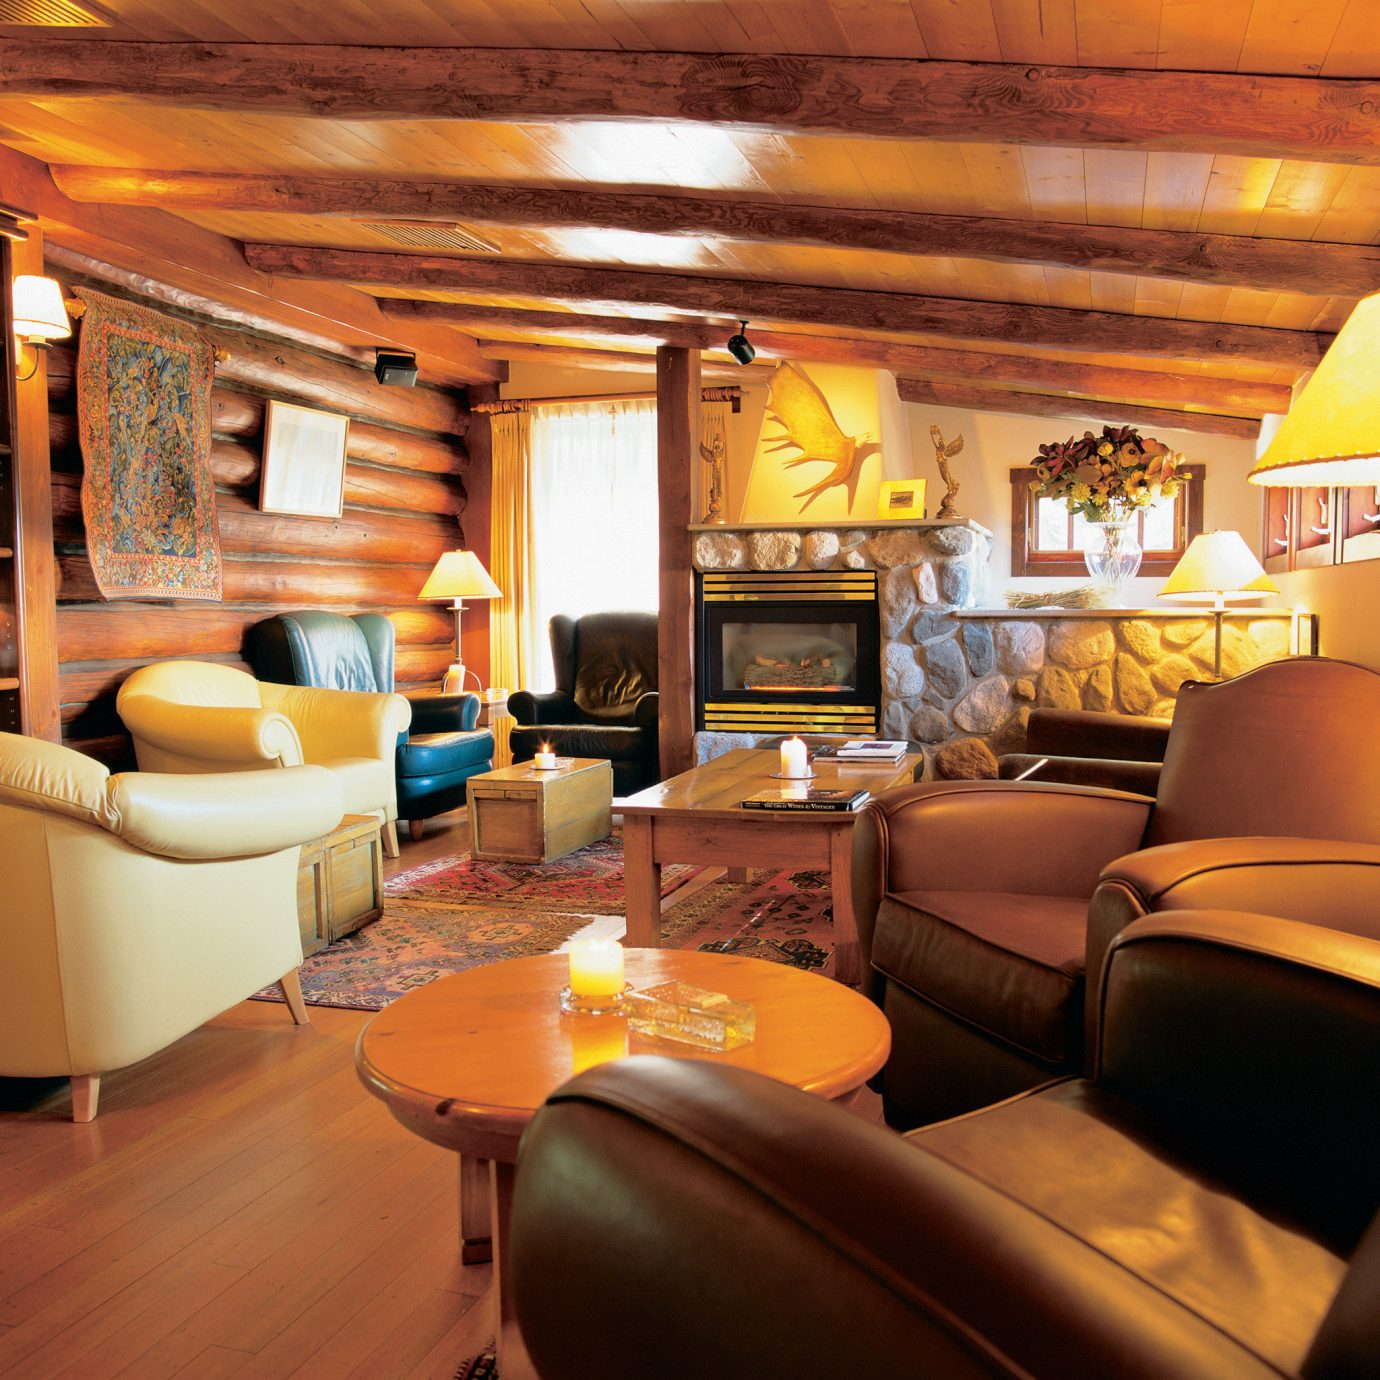 Rustic vehicle recreation room living room home yacht Suite